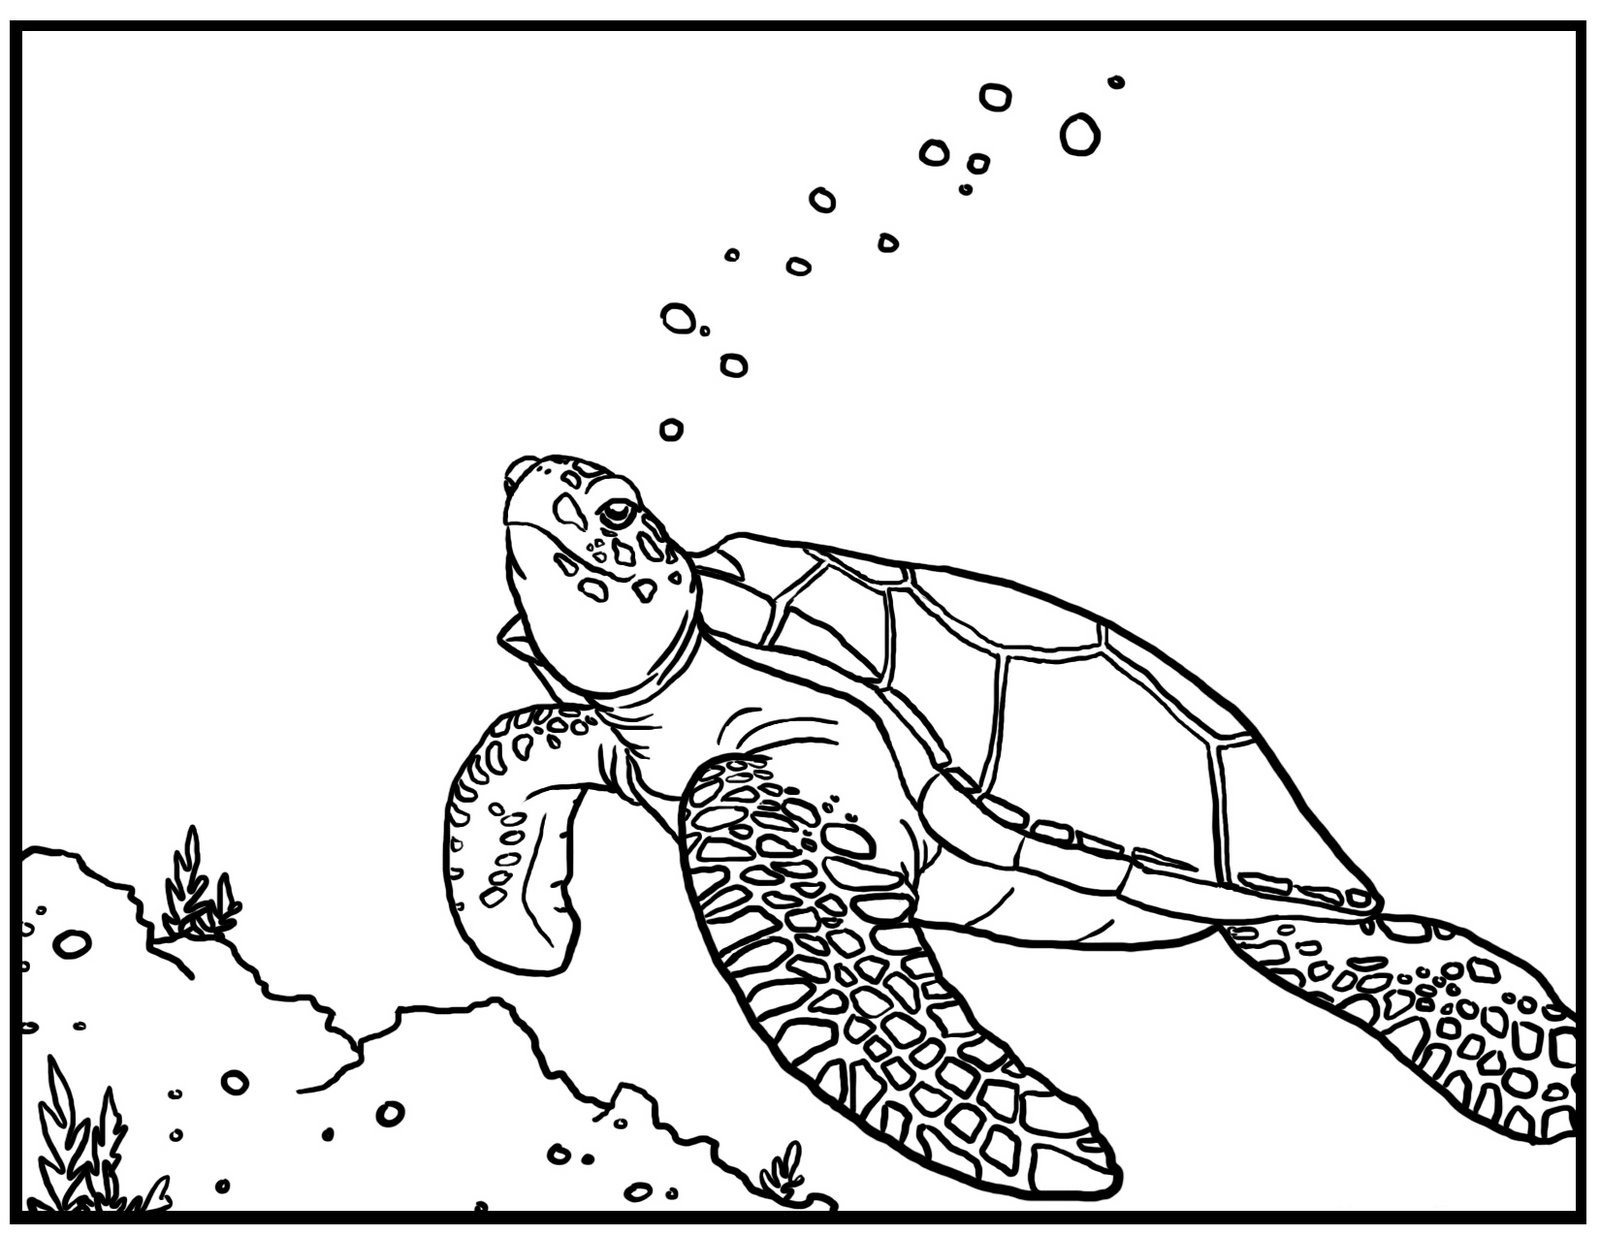 coloring page of sea turtle free printable turtle coloring pages for kids coloring sea turtle page of